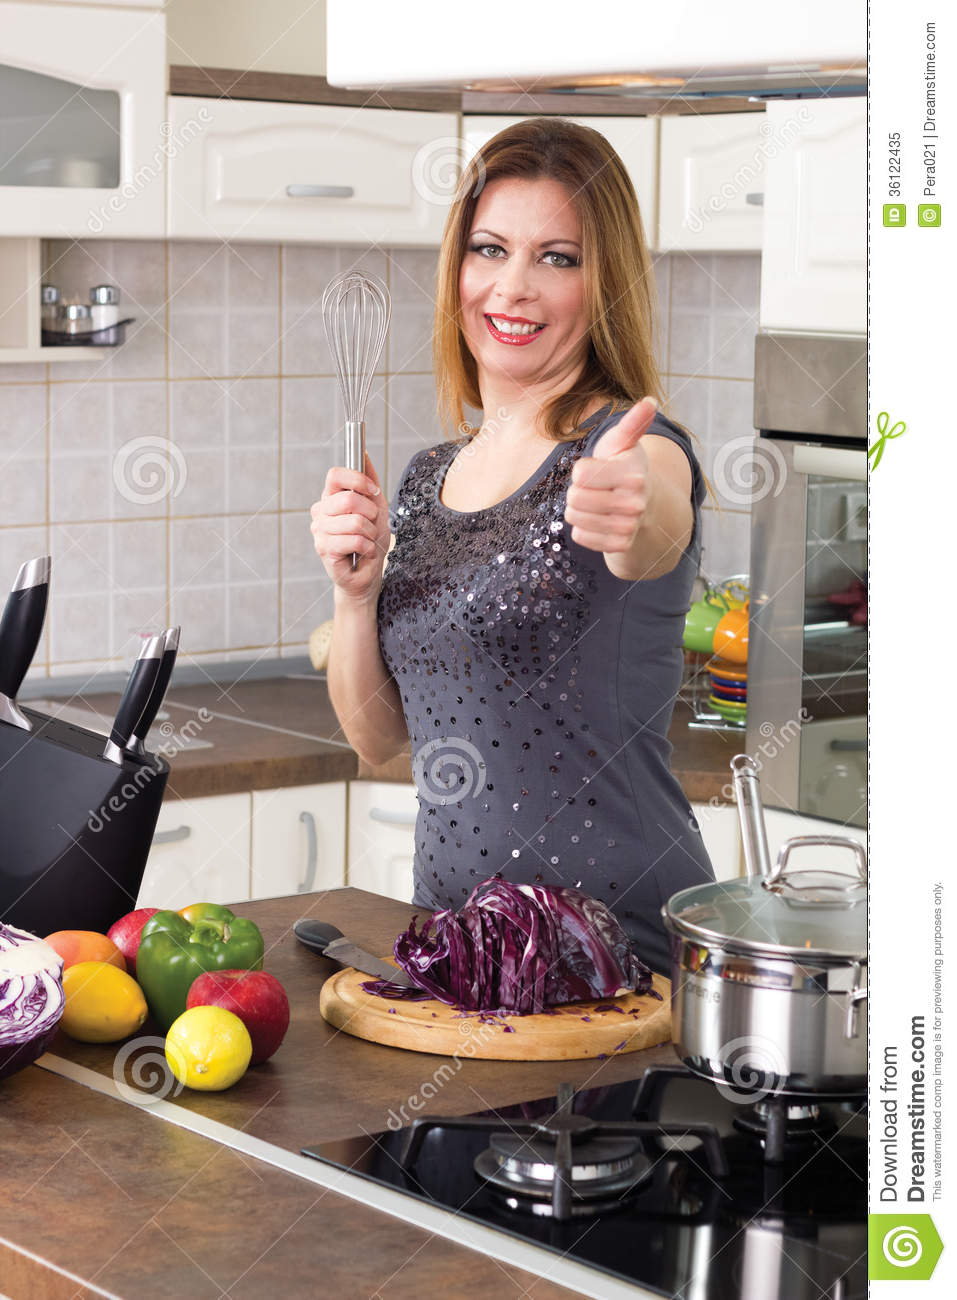 Modern housewife prepare a meal and shows a thumbs up for Modern housewife